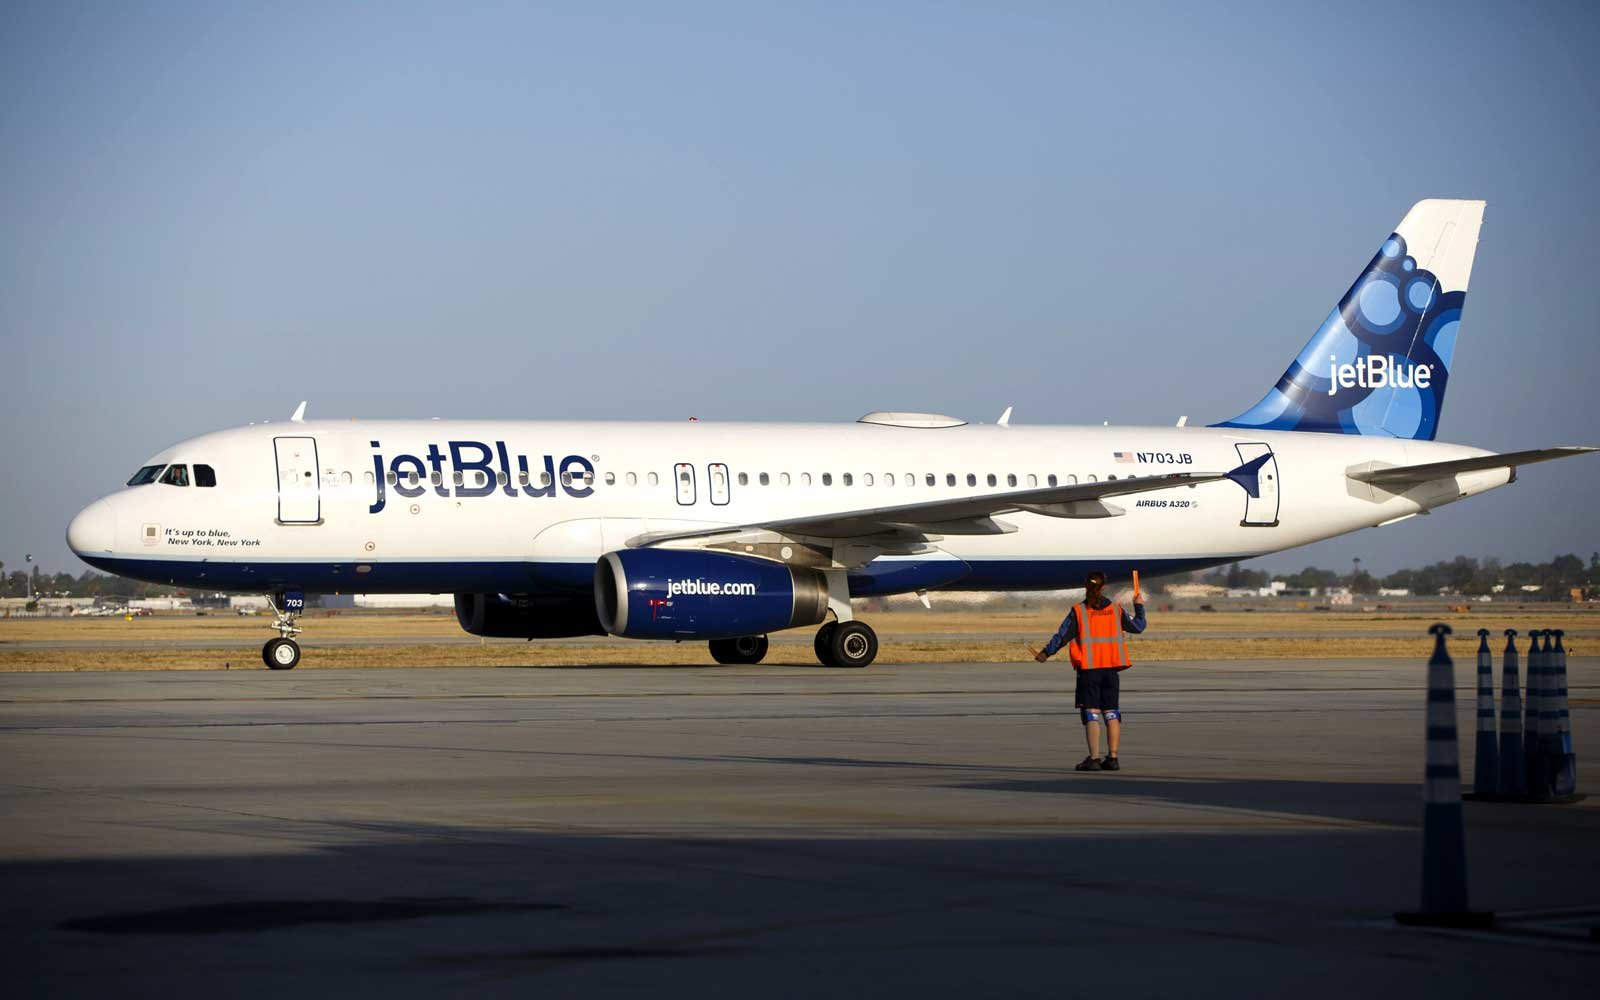 JetBlue Daily Deals